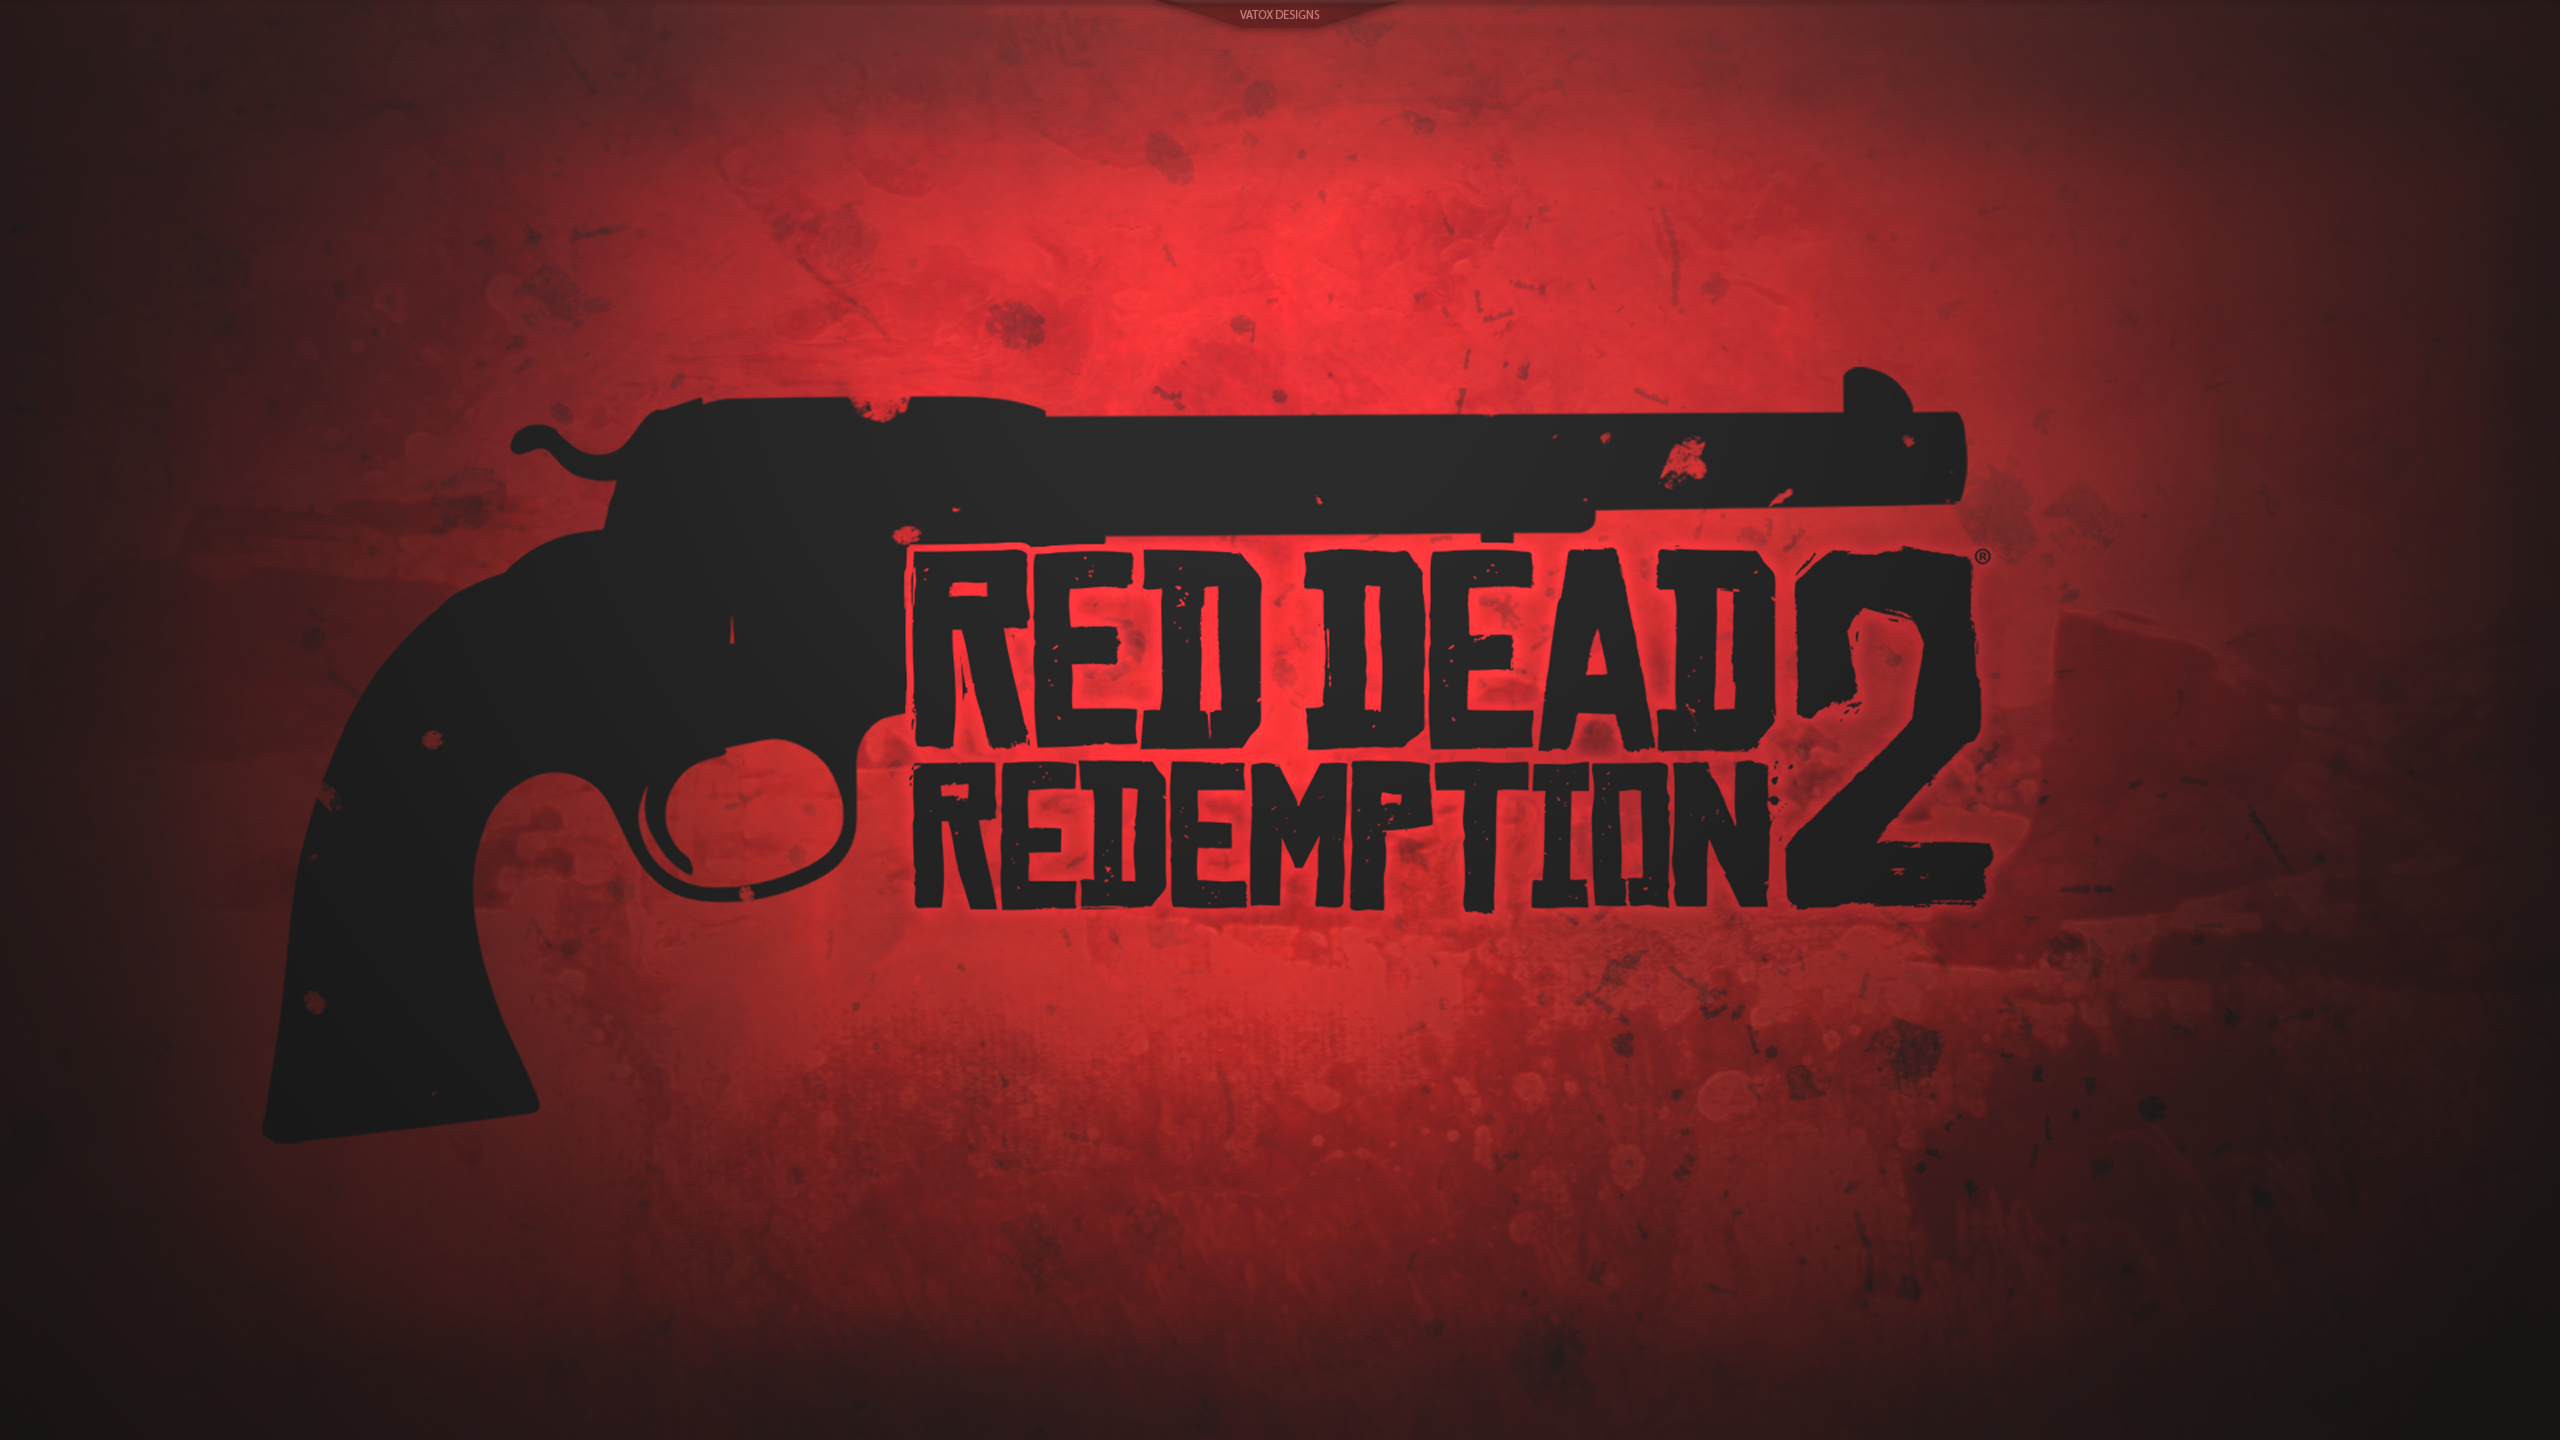 Red Dead Redemption 2 1440p Wallpaper FanMade gaming